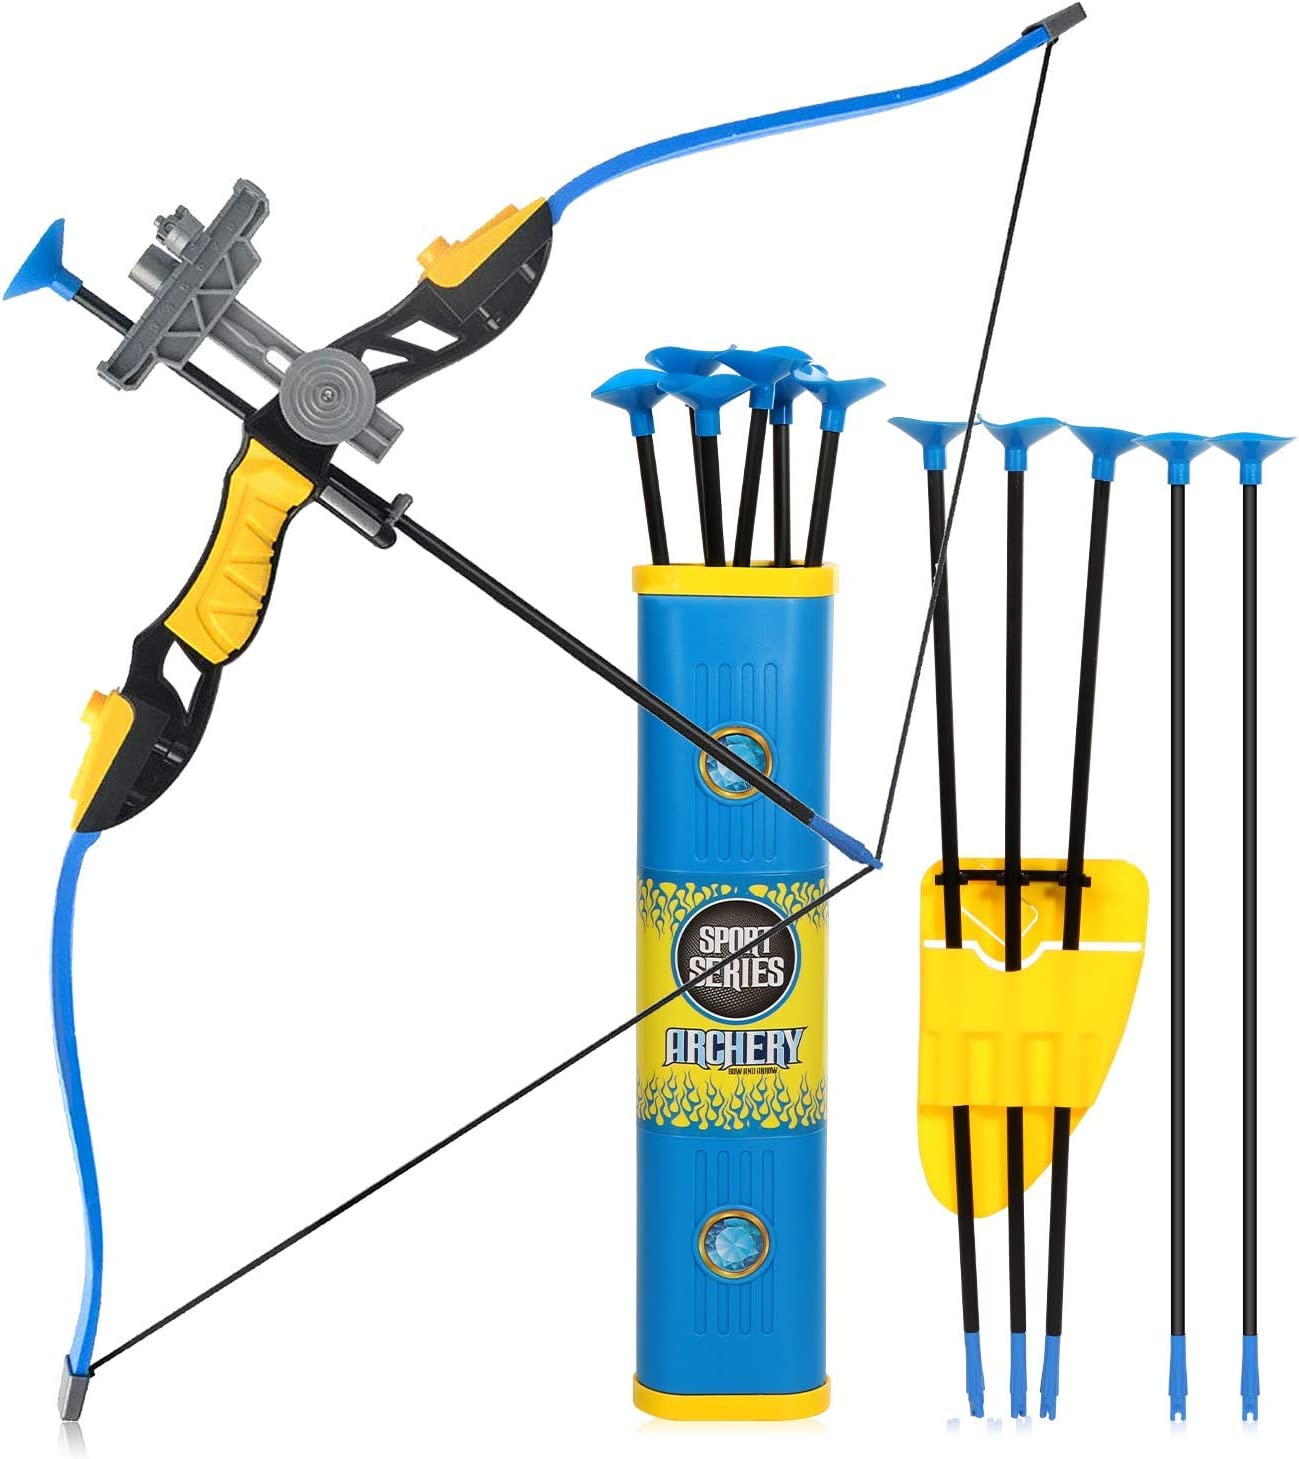 2 Set Archery Bow and Arrow Toys Funny Archery Game for Outdoor Kids